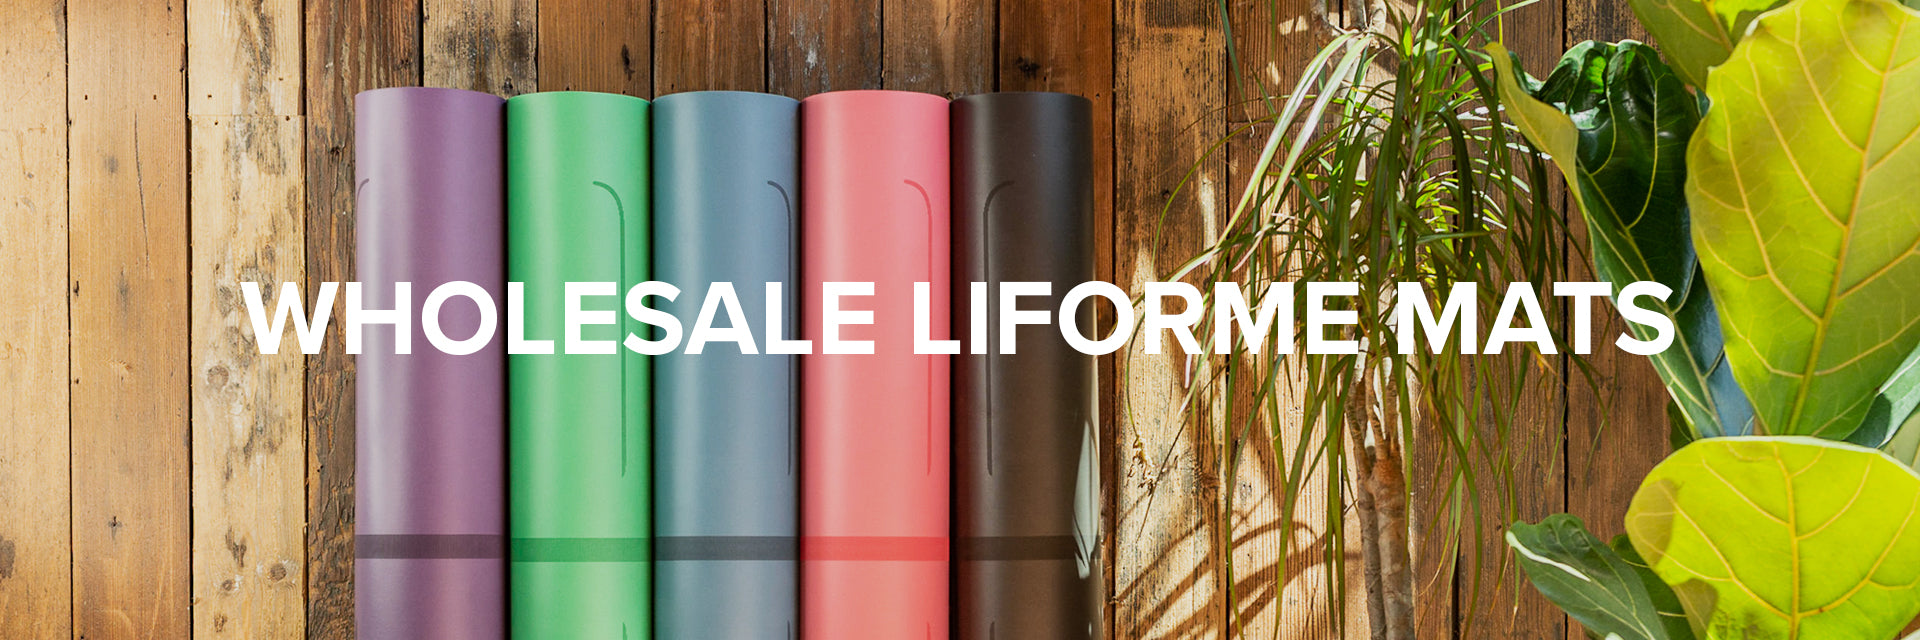 wholesale liforme